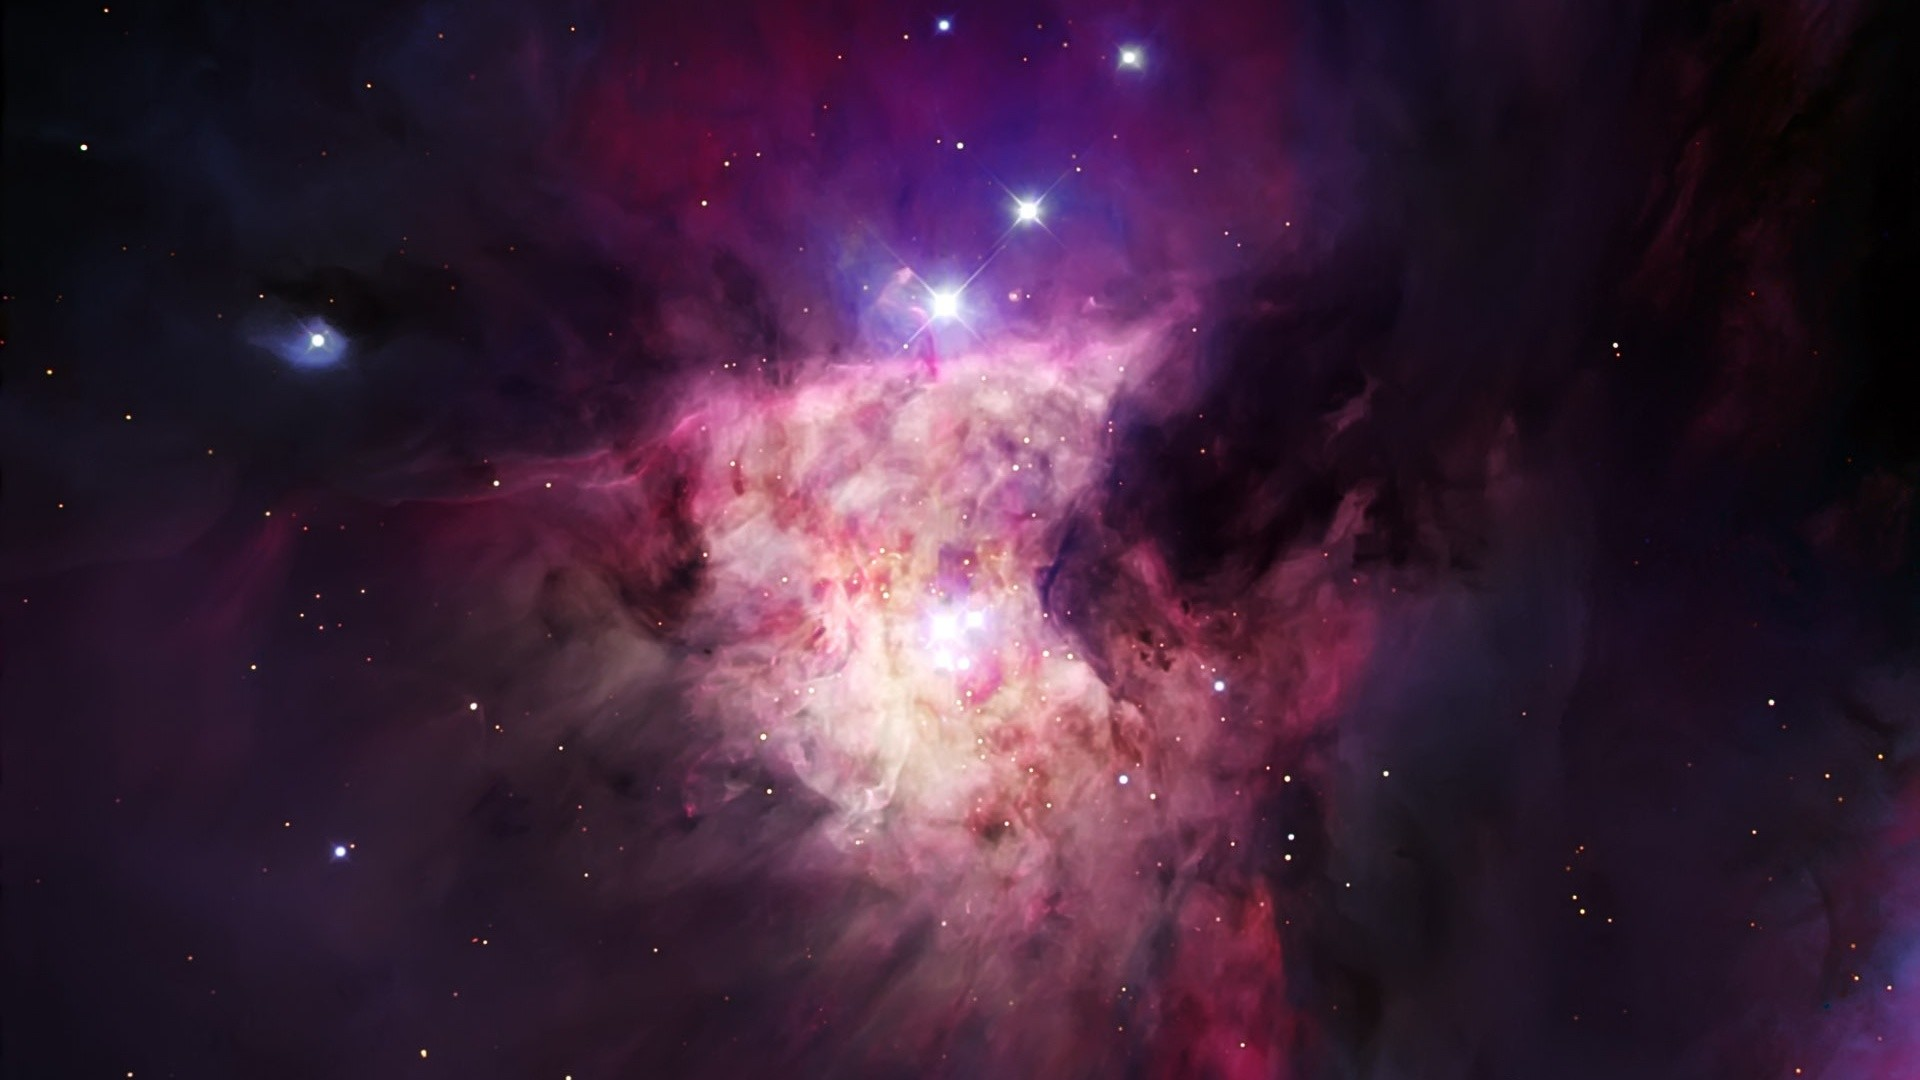 20 HD Outer Space Desktop Wallpapers For Free Download